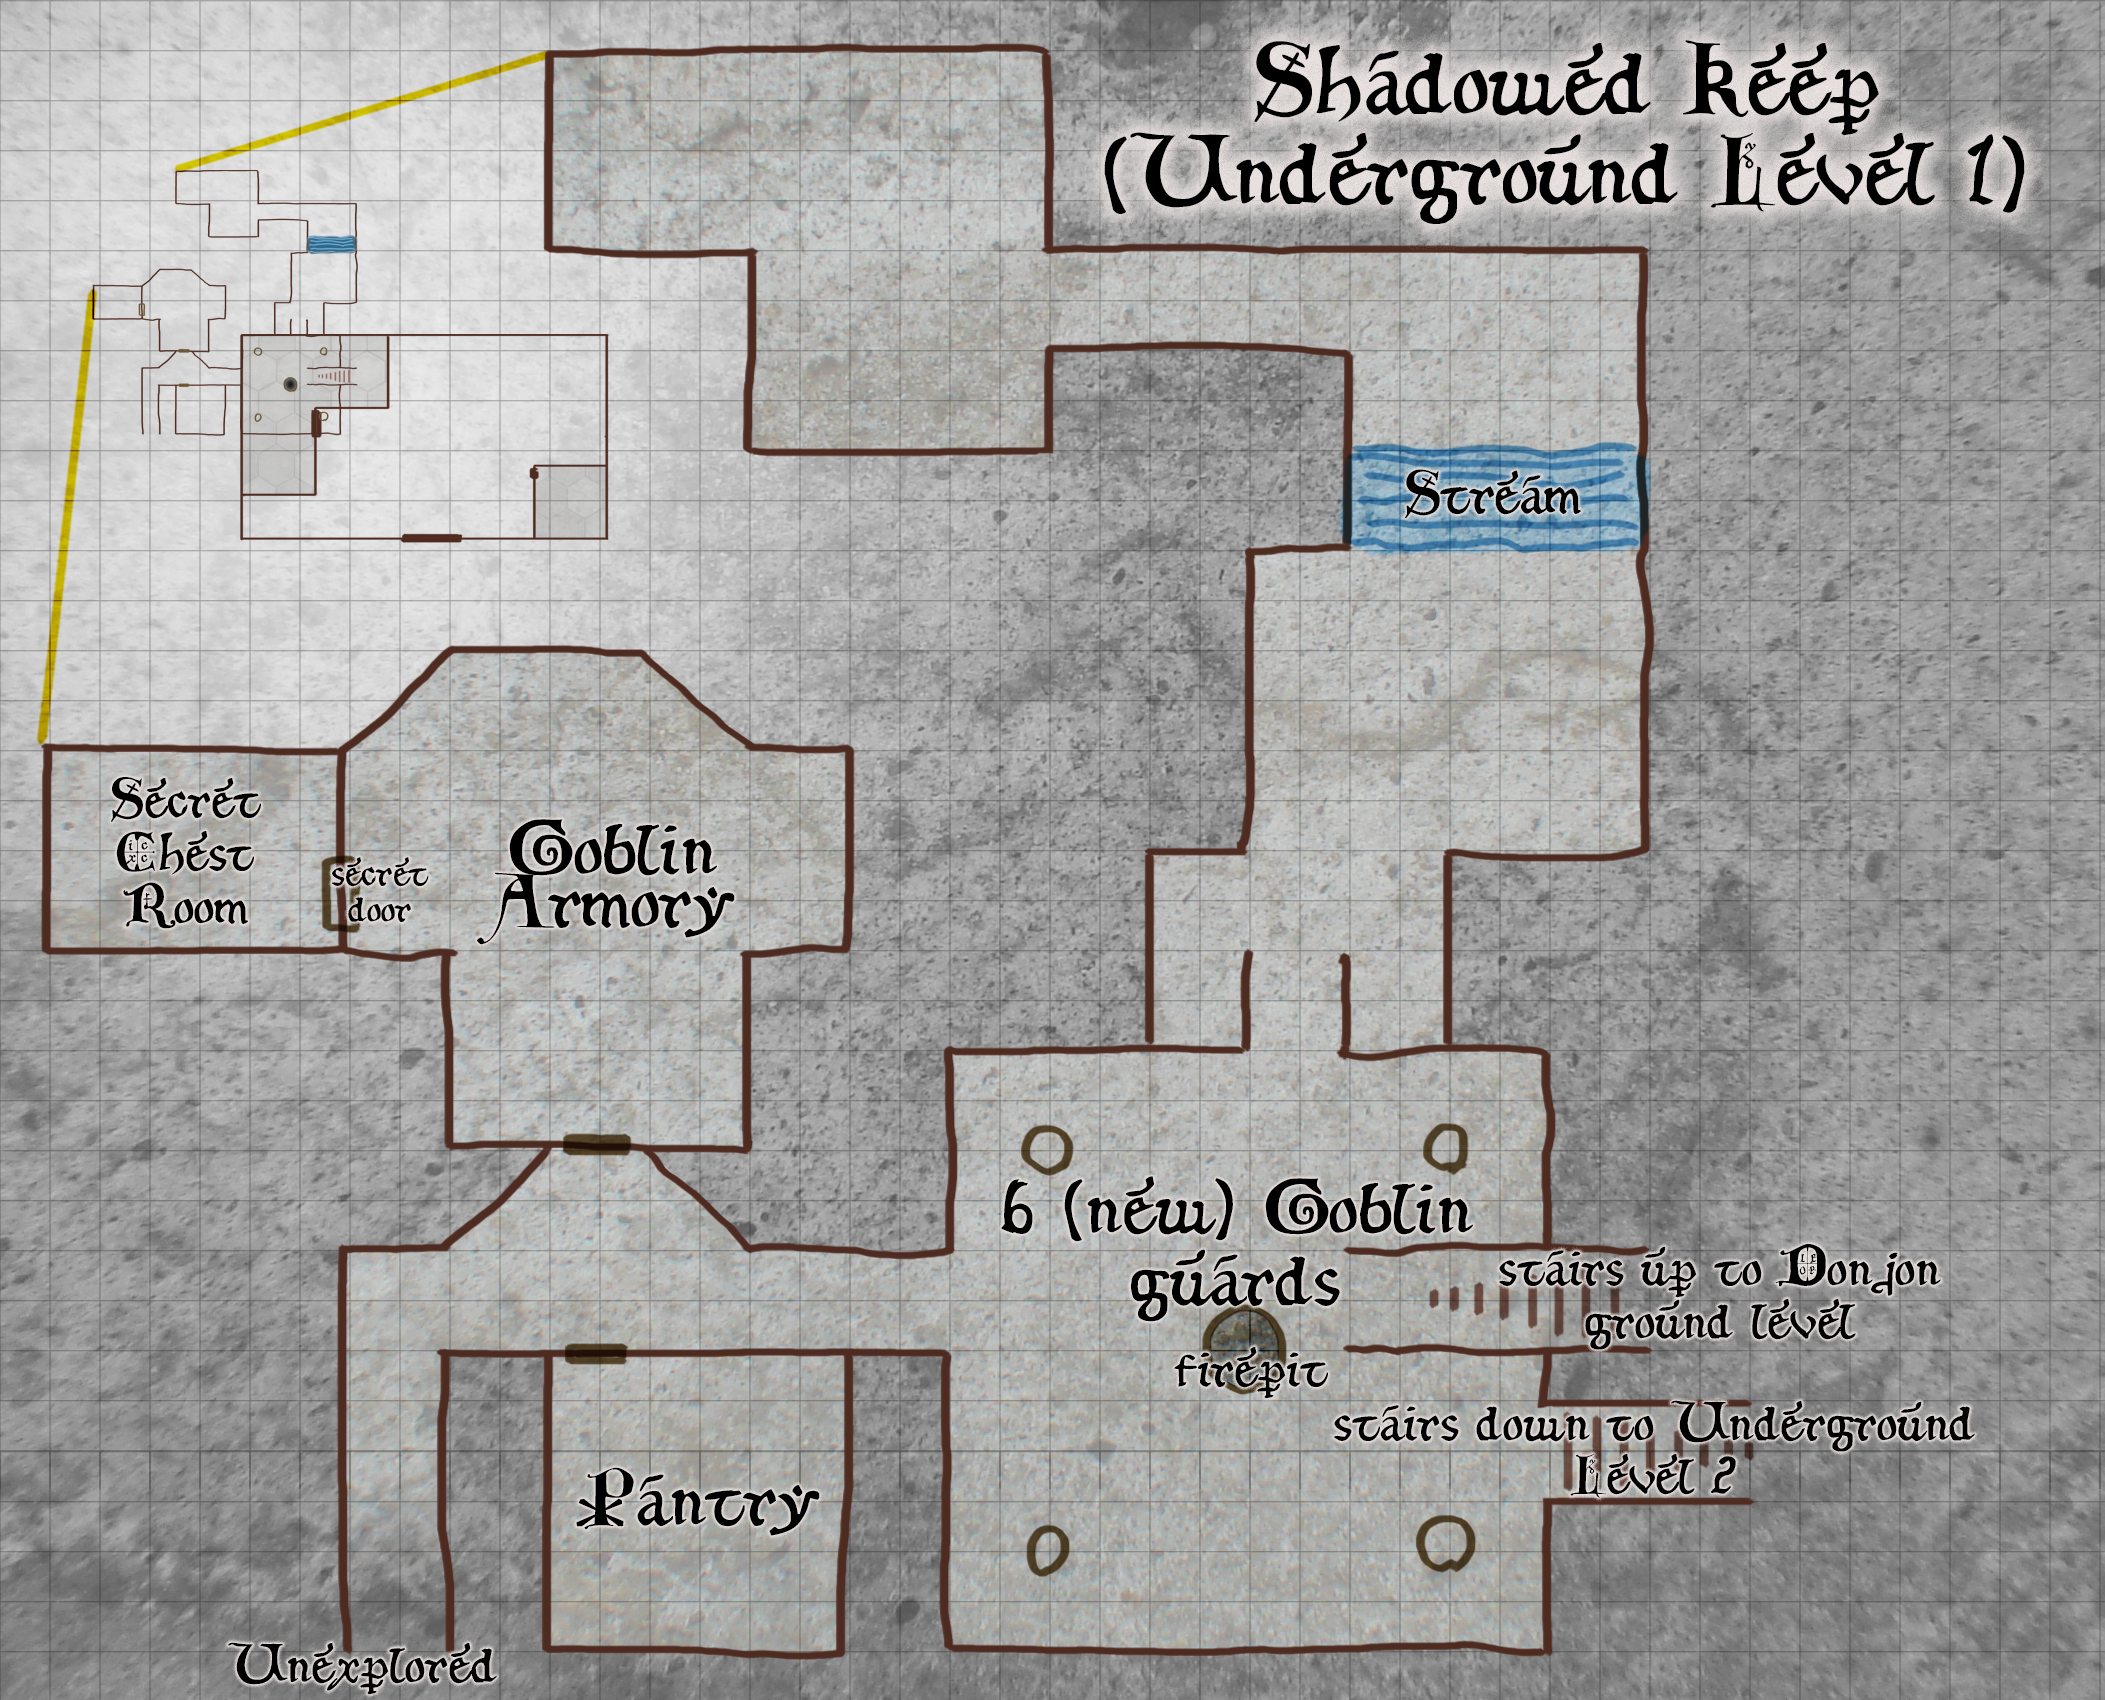 Shadowed Keep - Underground Level 1